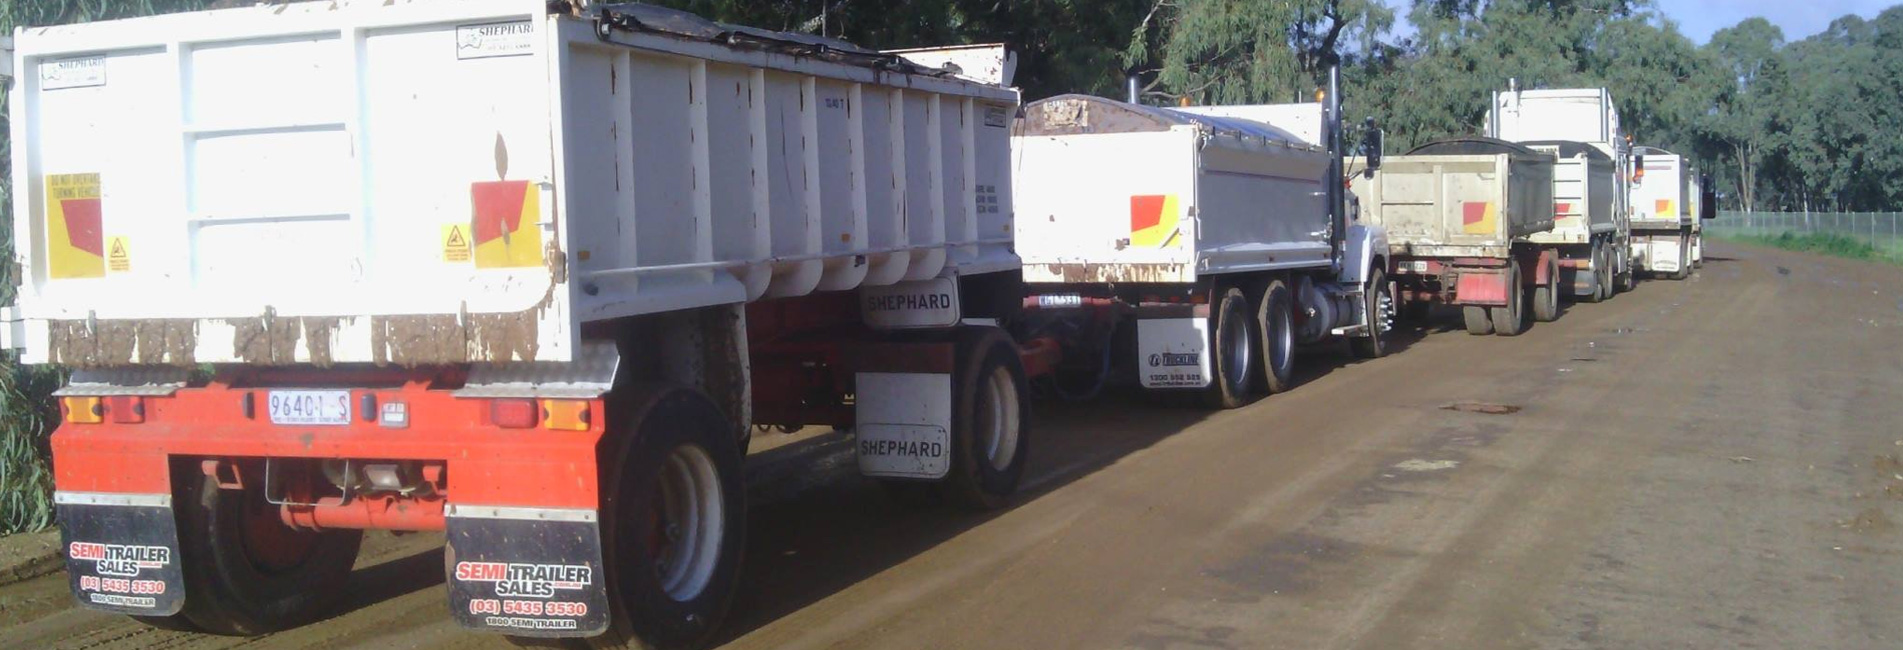 Trailer Sales Bendigo, Semi Trailer Rental Lockwood, Semi Trailer Sales Kangaroo Flat, Used Semi Trailers Sydney & Brisbane